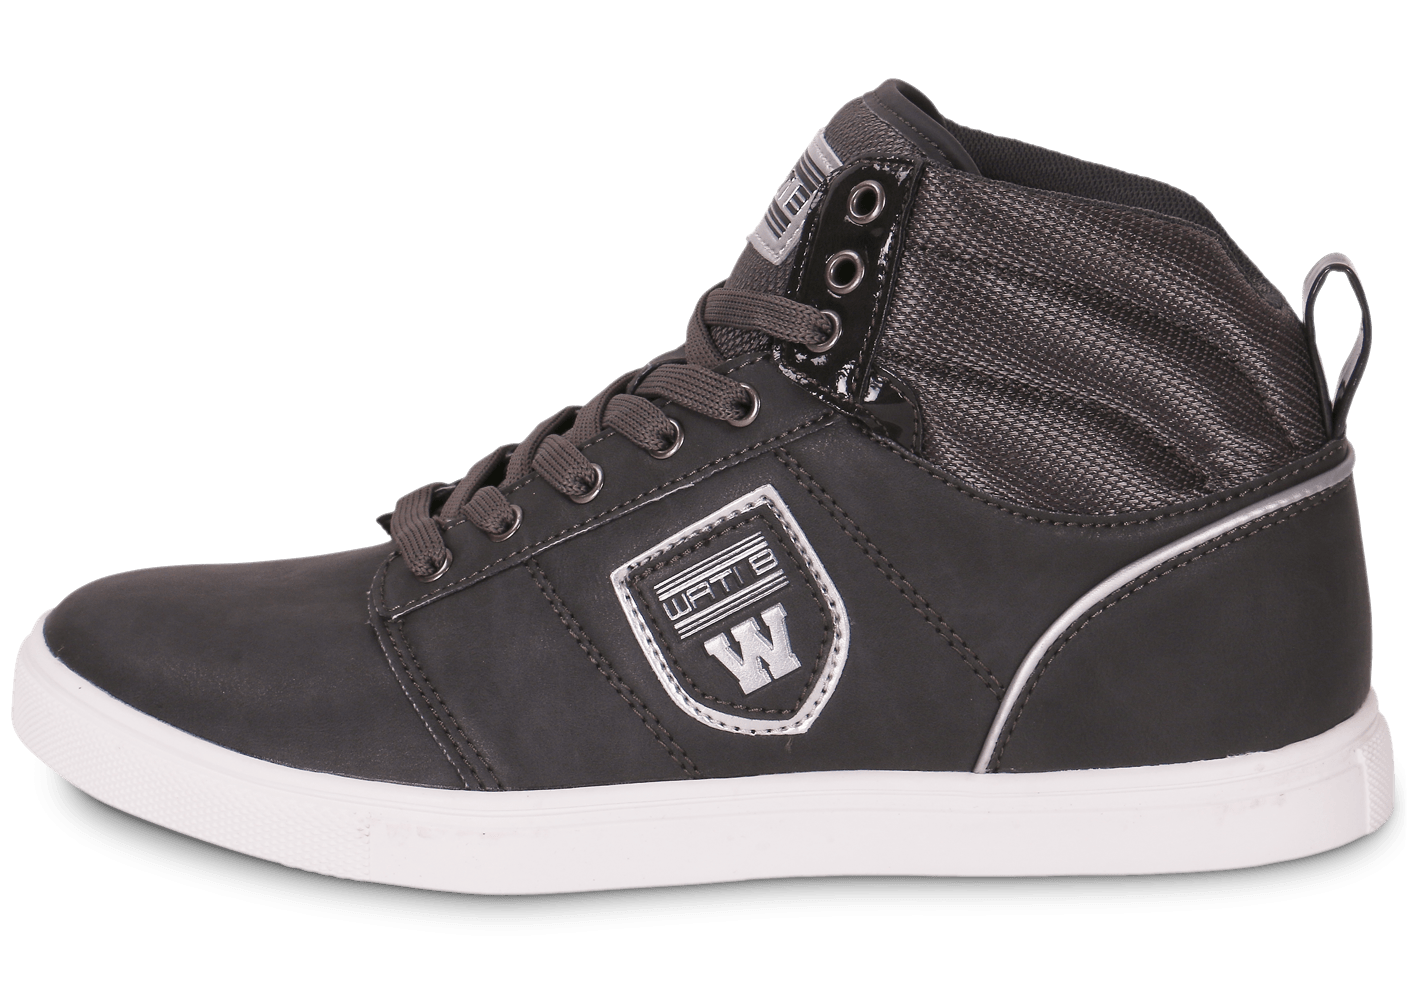 newest 2accd 2e4d4 Wati B Pat Grise - Chaussures Baskets homme - Chausport